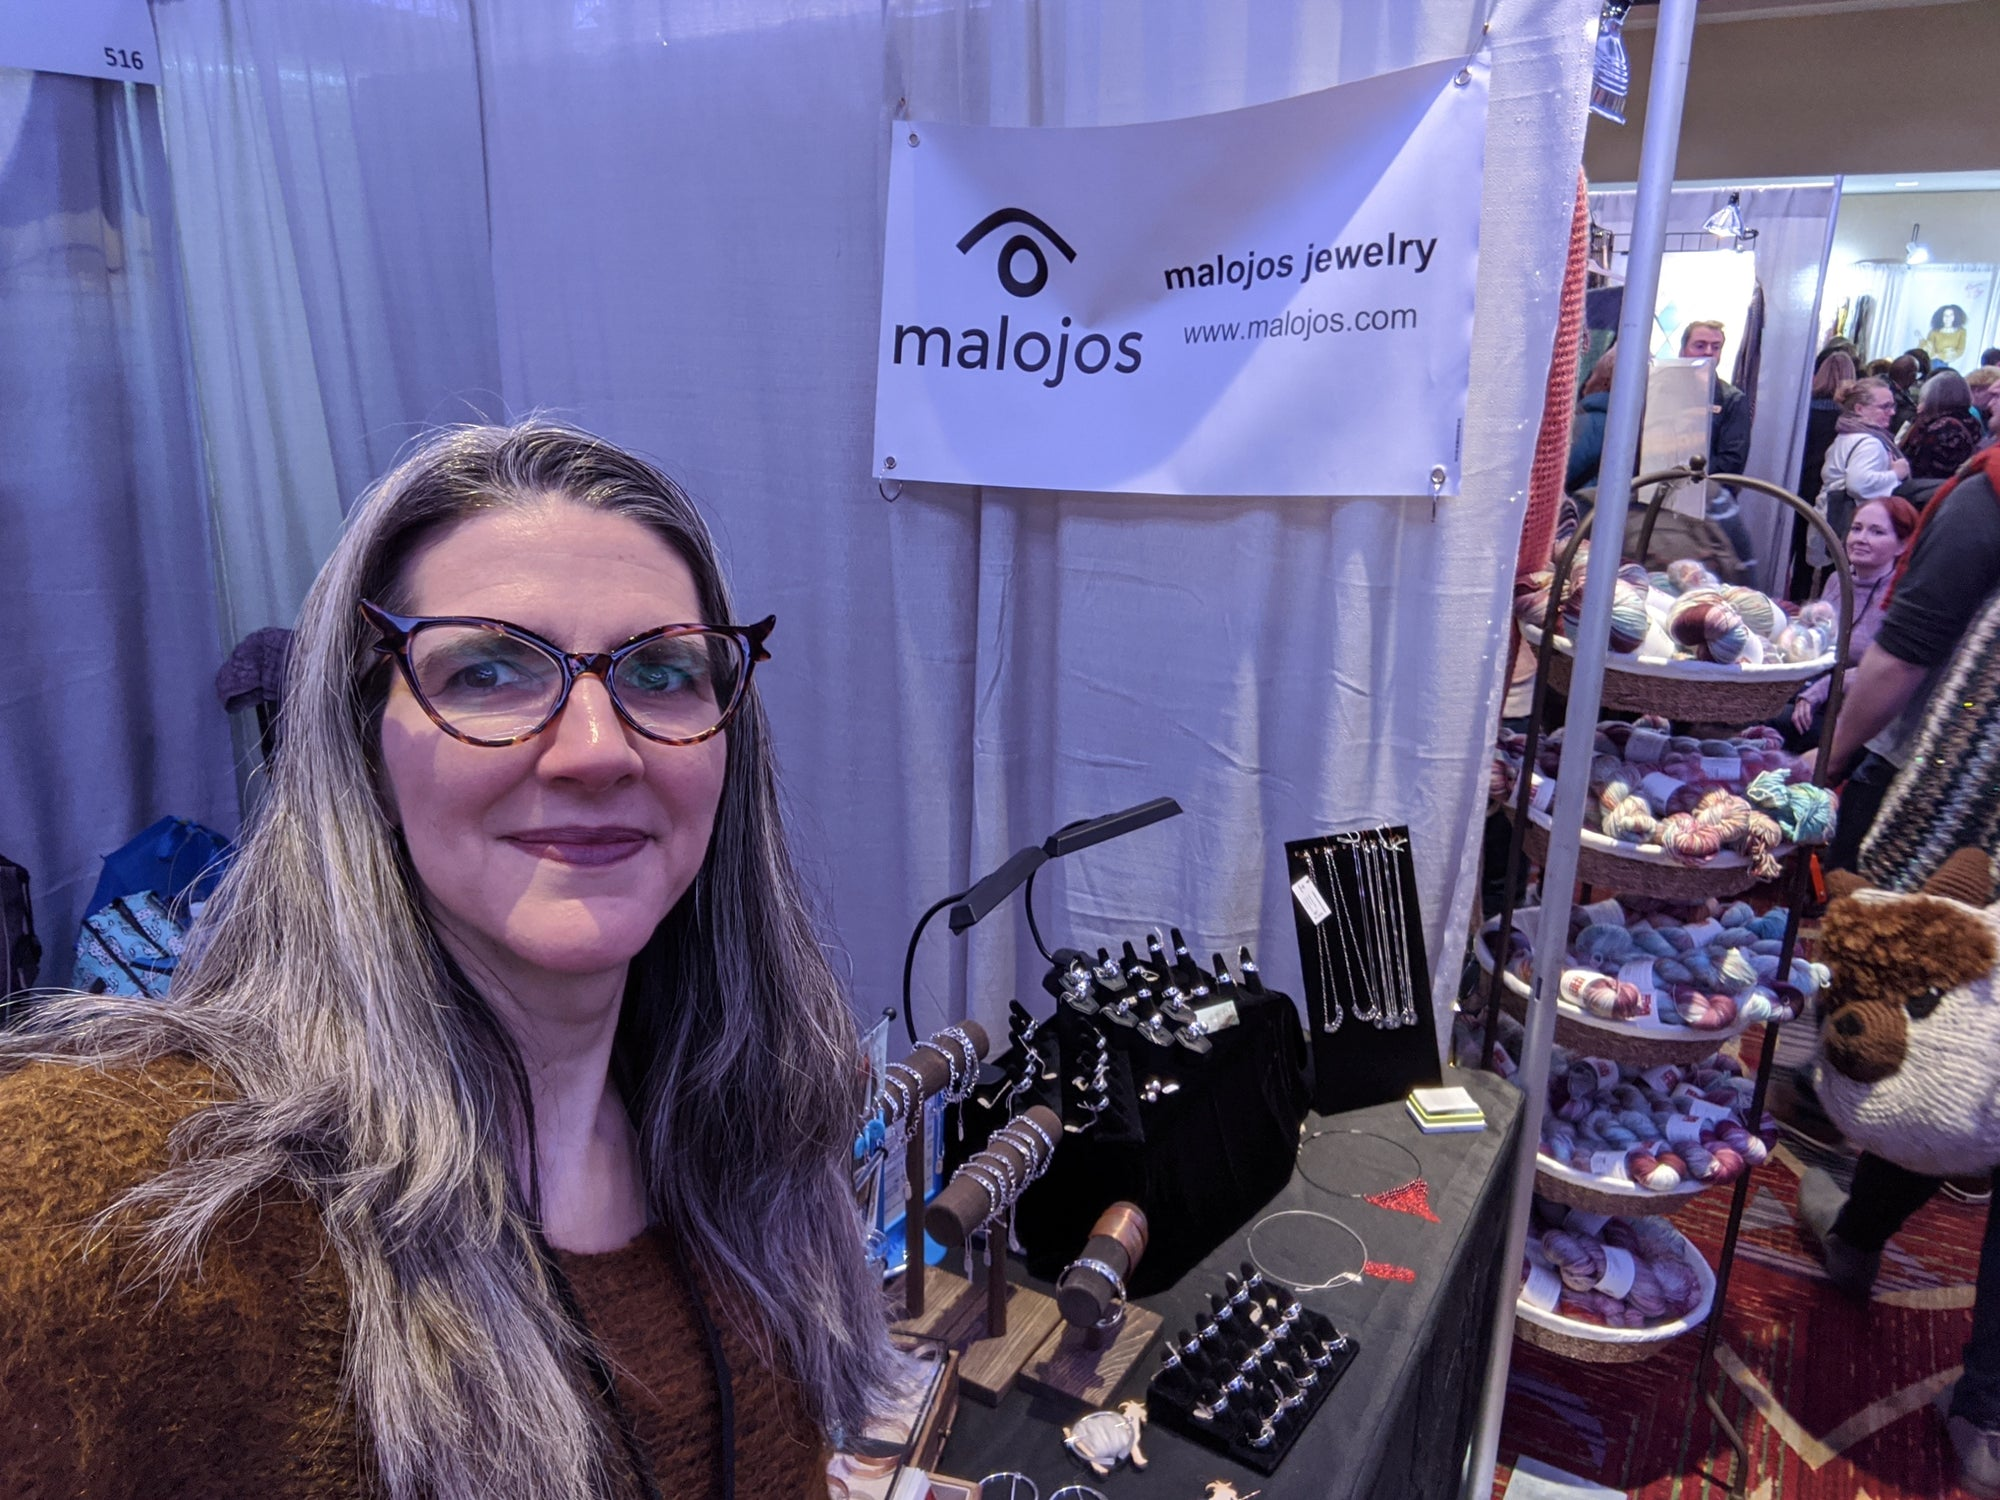 Natalia next to her Malojos booth at Vogue Knitting Live NYC